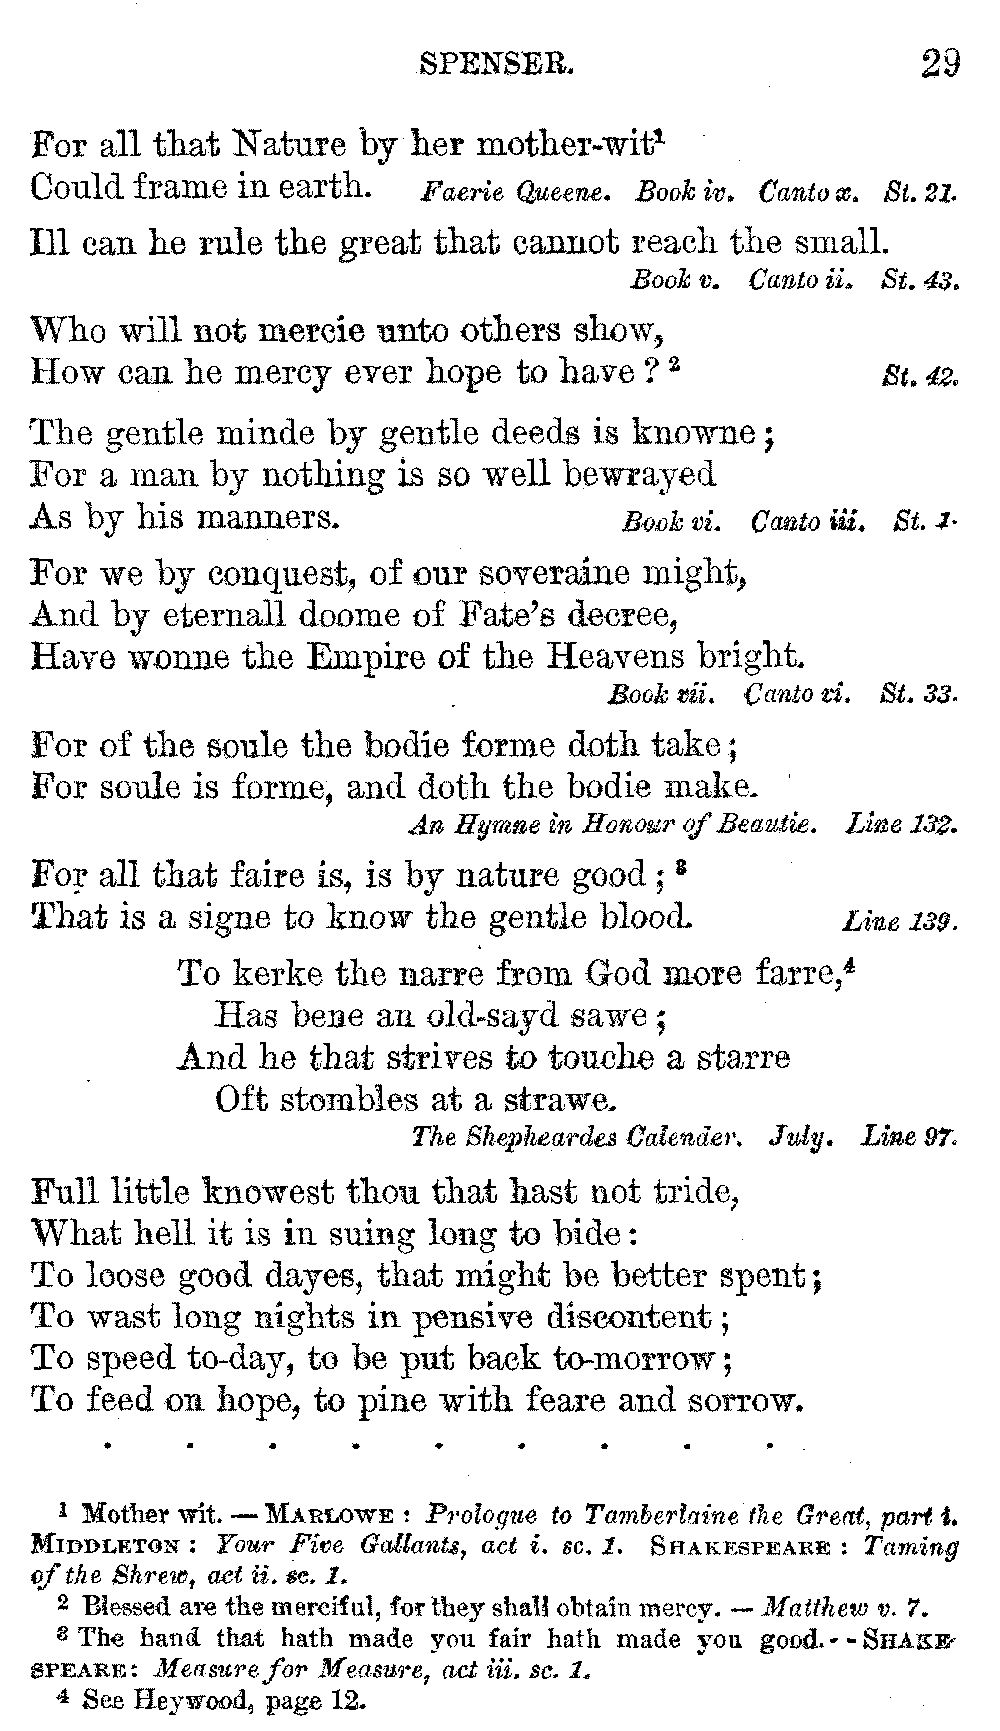 What is the meaning of the sonnet